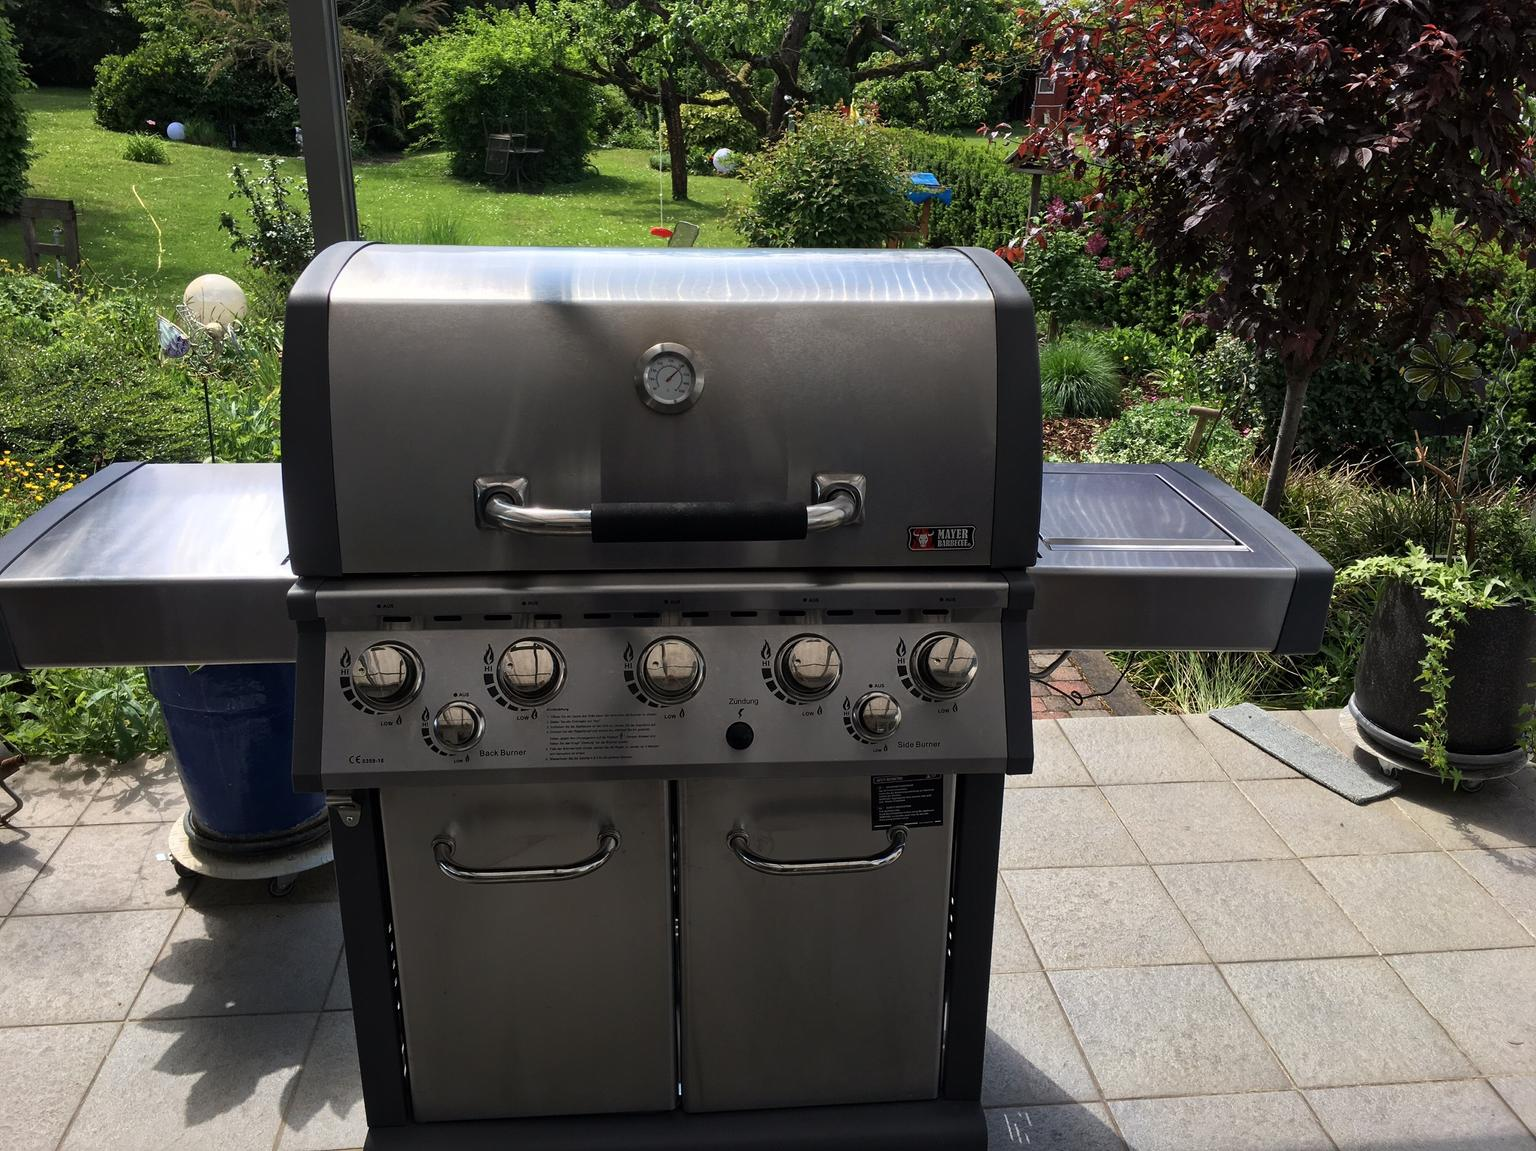 Mayer Gasgrill Zunda Test : Gasgrill mit 5 brennern backburner usw. in 64521 groß gerau for